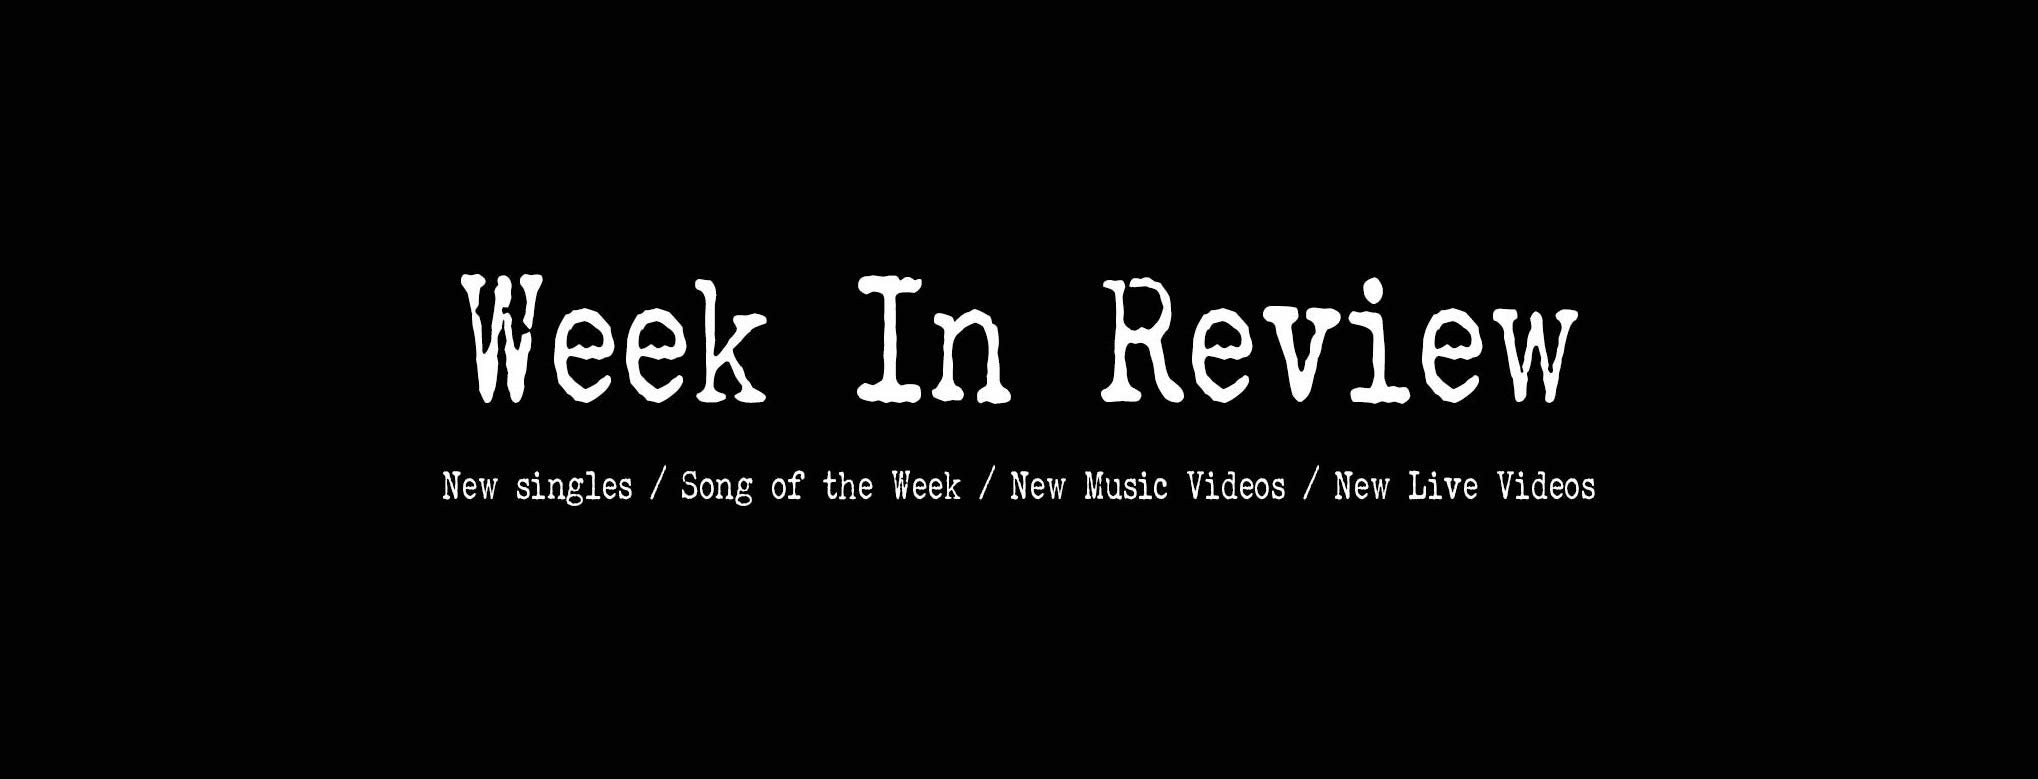 week-in-review-header